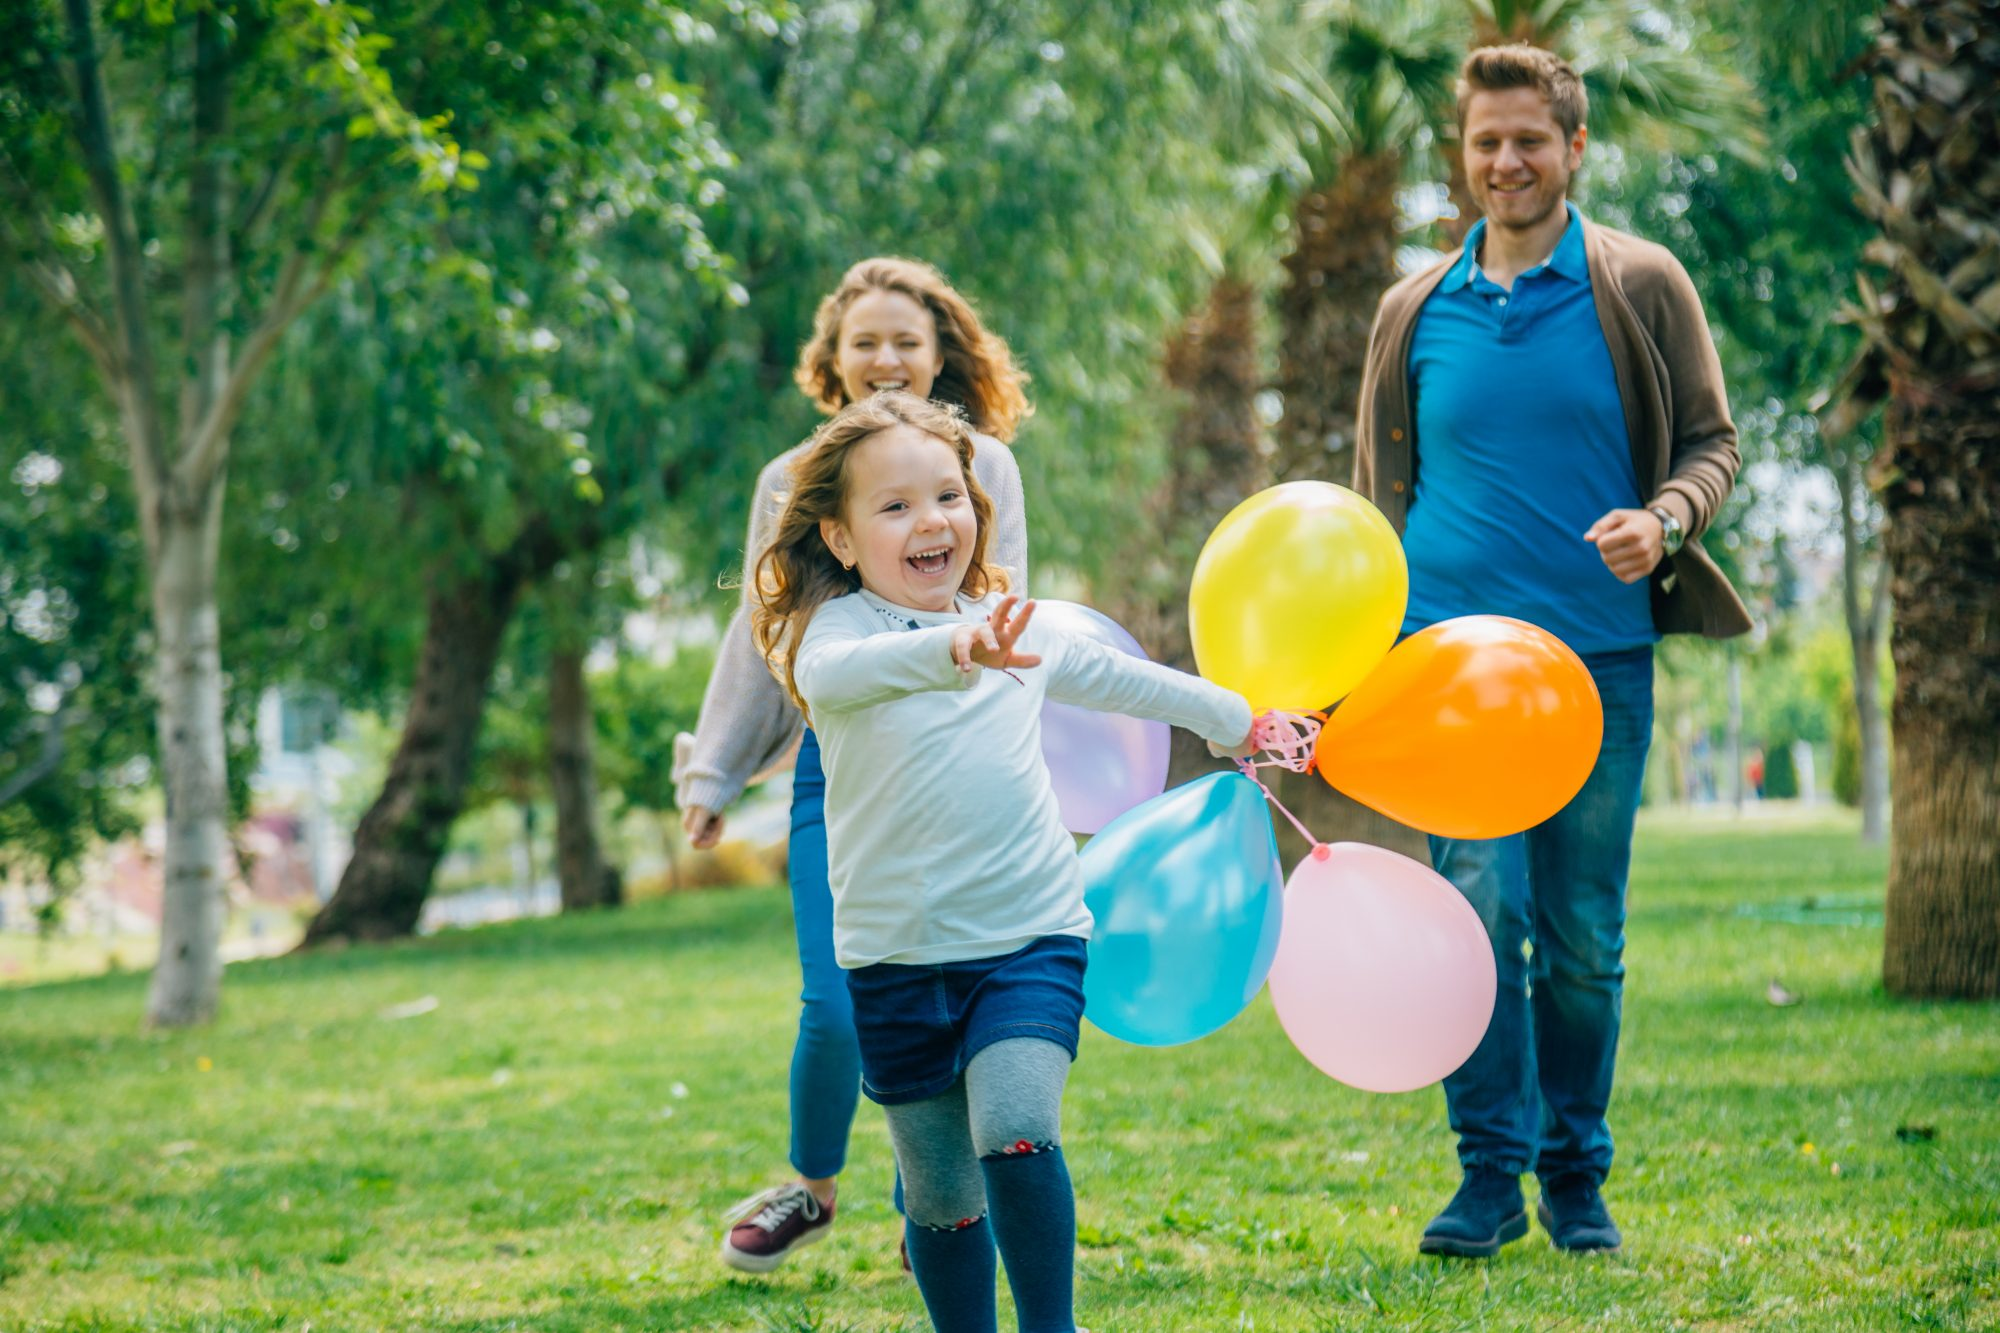 Mother and father watching daughter run with balloons.